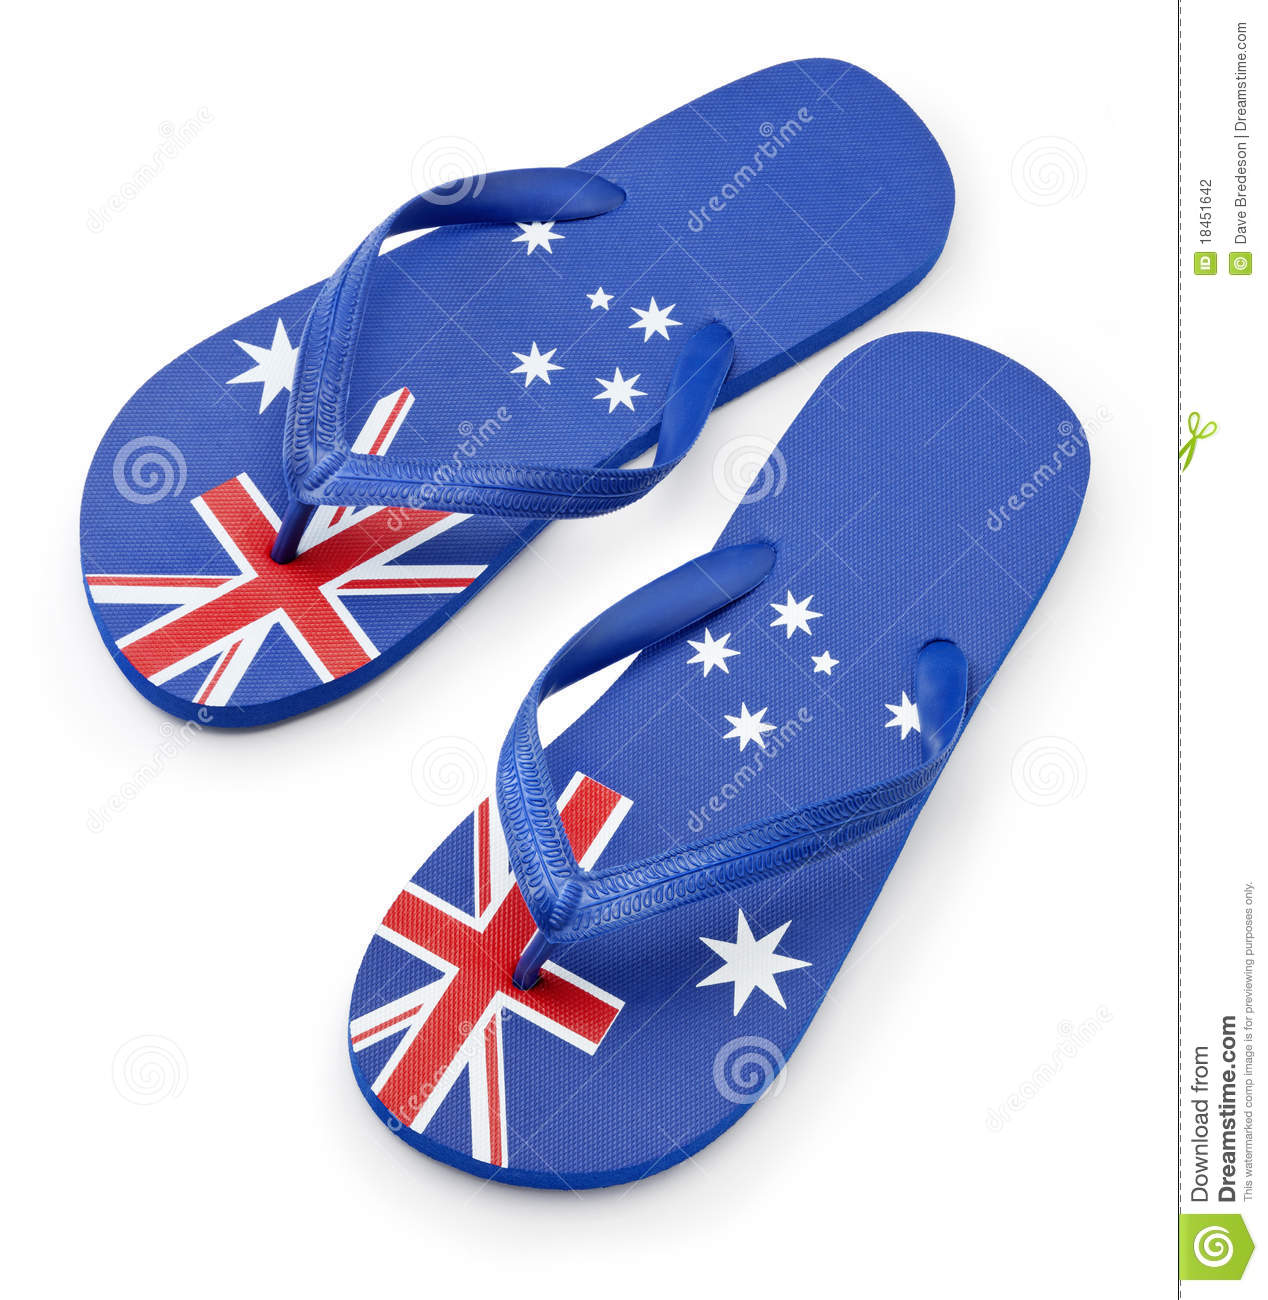 Australian Flag Thongs Sandals Stock Photography - Image: 18451642